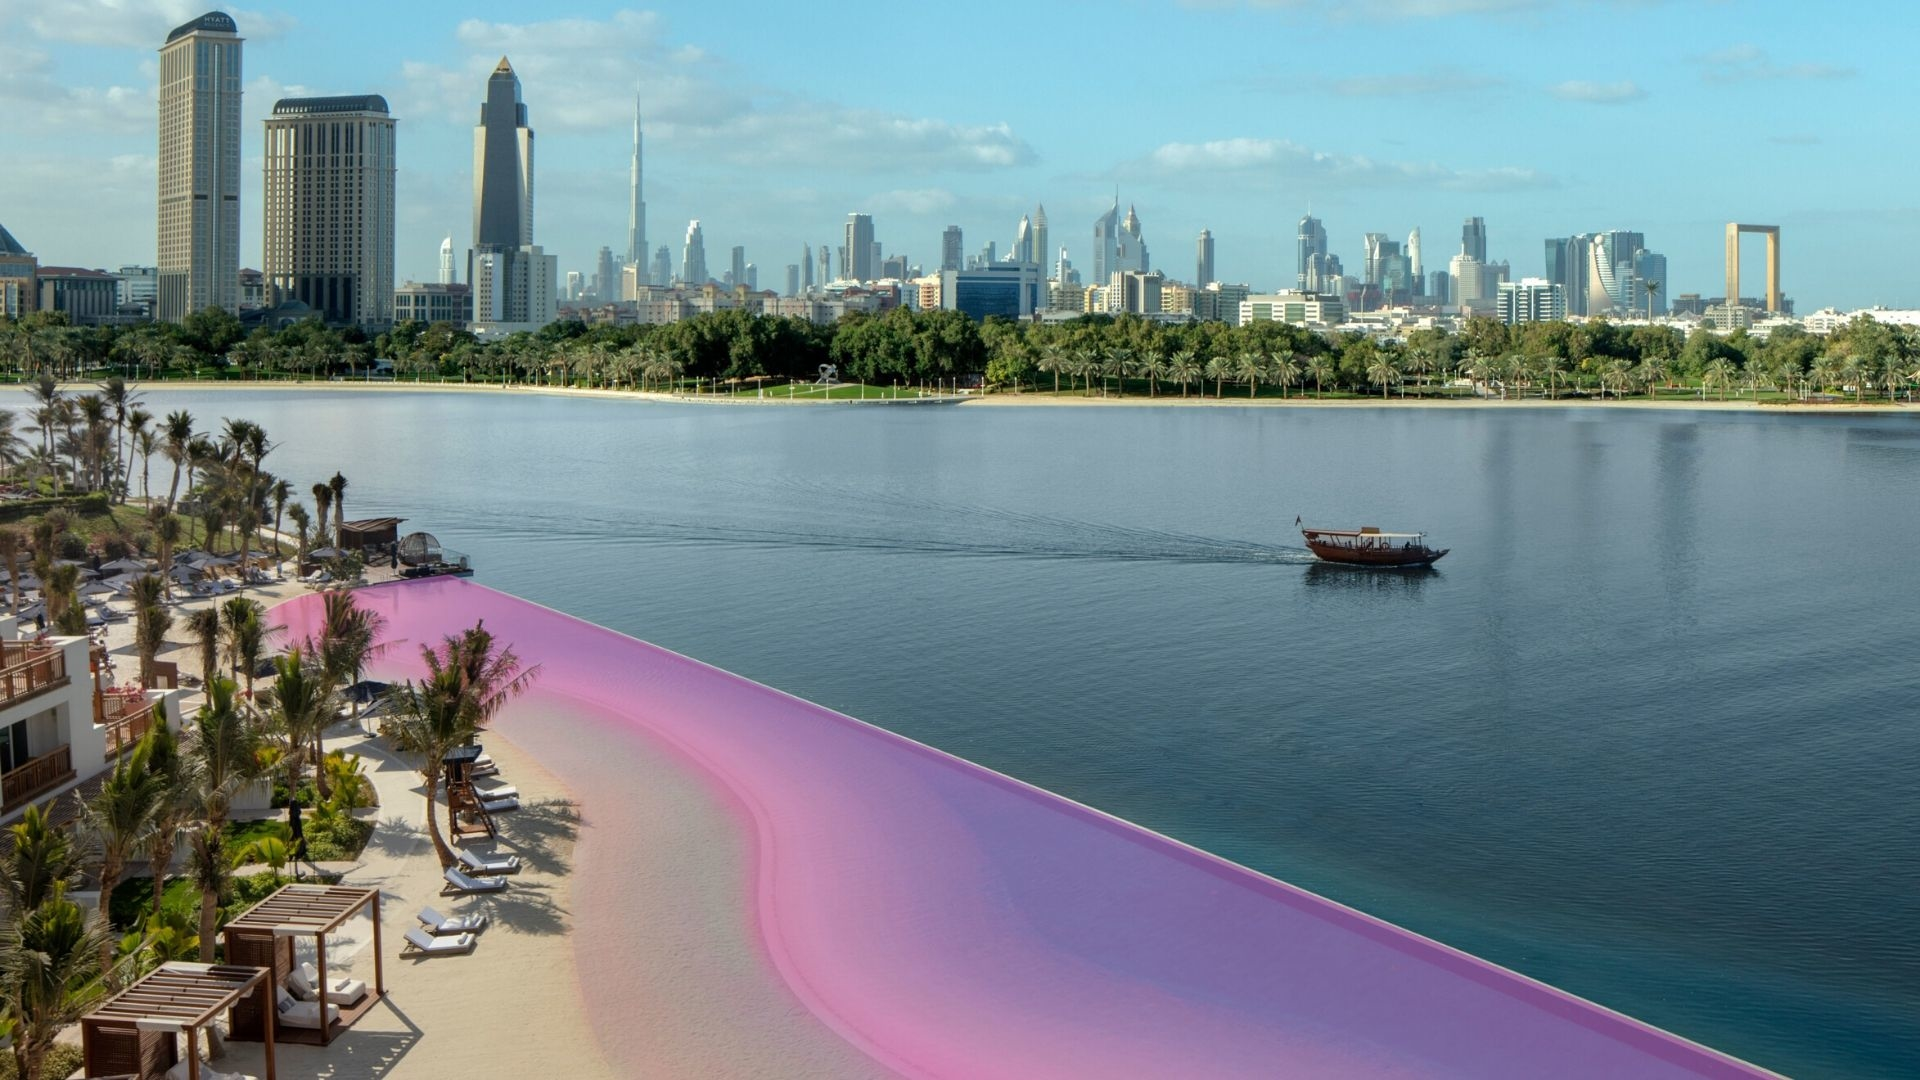 This Dubai Resort Just Turned Their Beach Pink For Breast Cancer Awareness